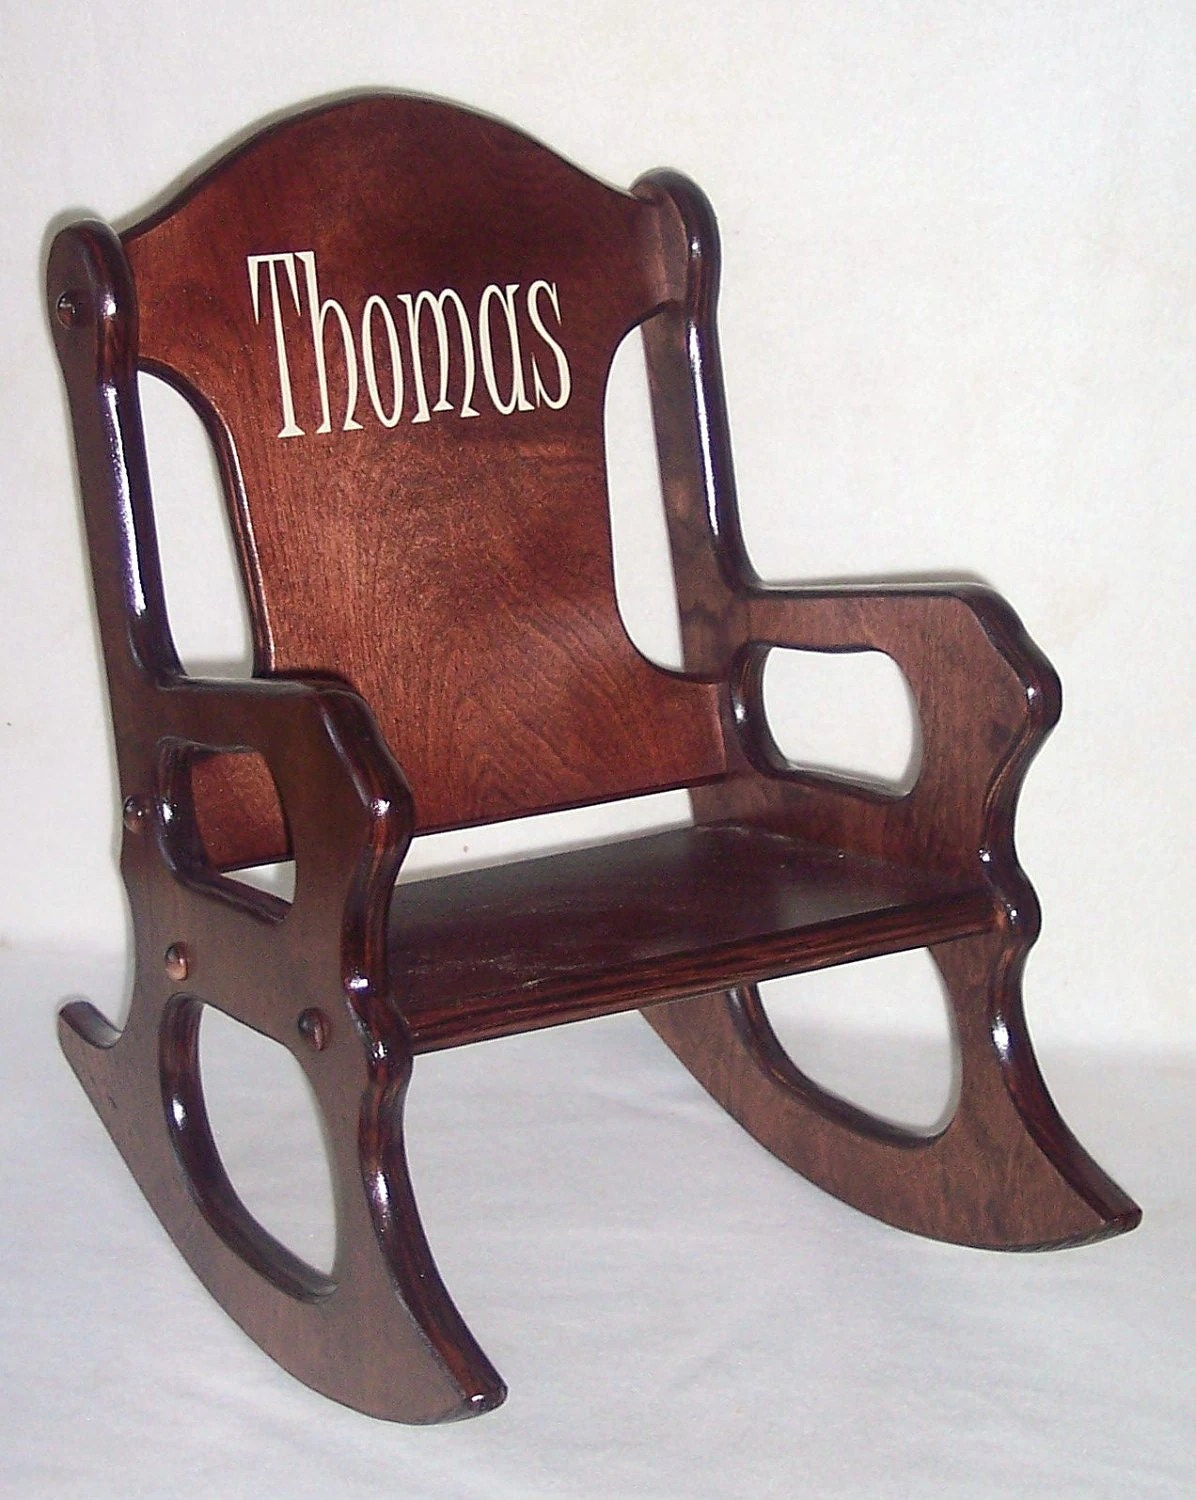 personalized rocking chair for toddlers lycra covers sale uk wooden kids cherry finish